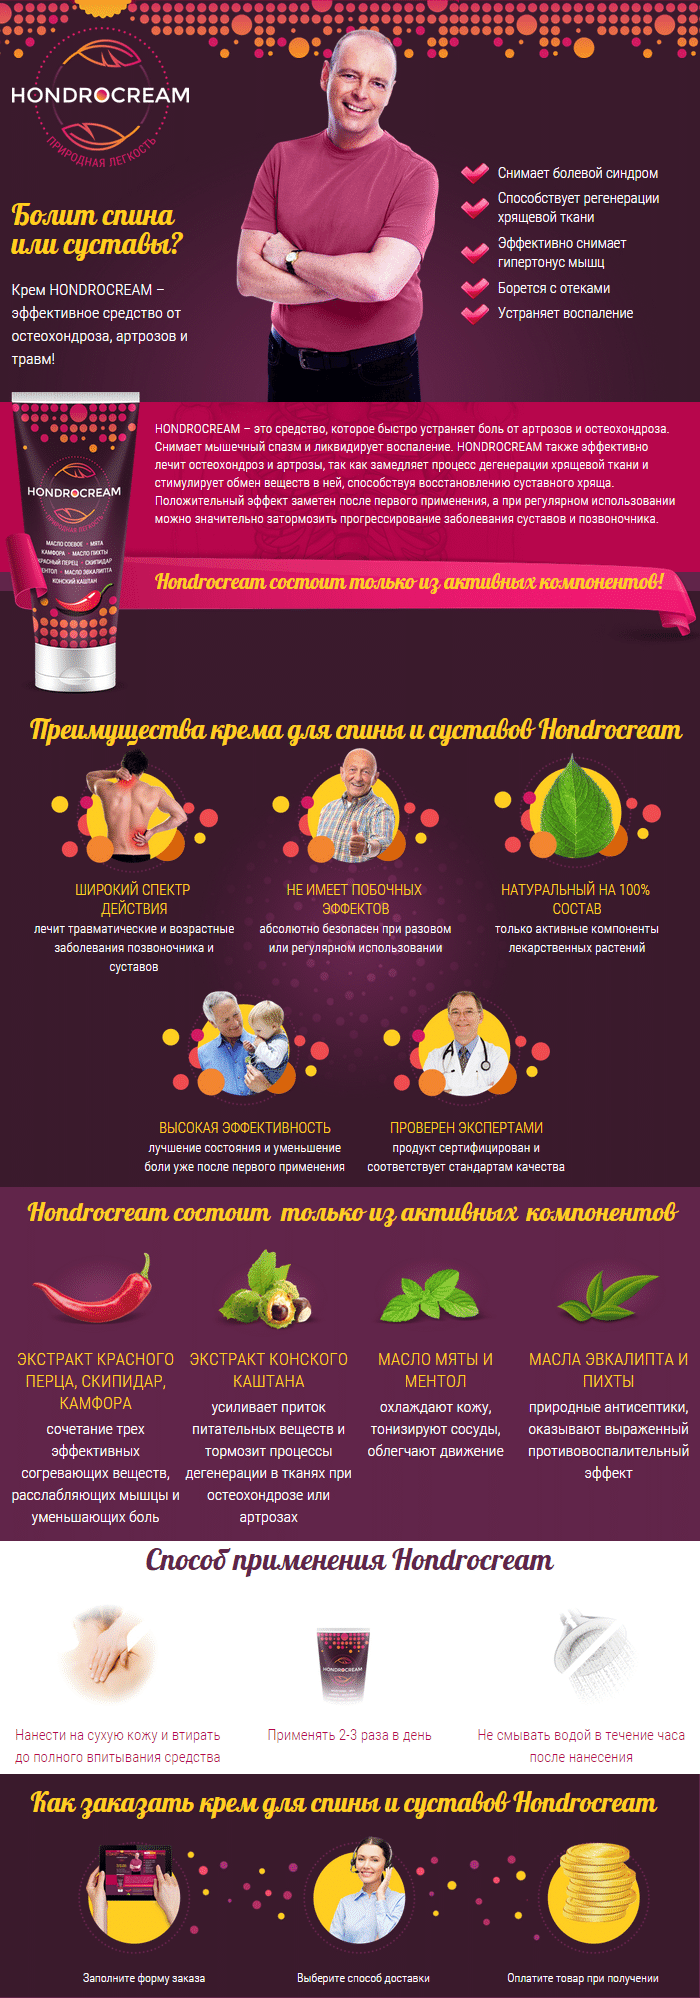 купить Hondrocream